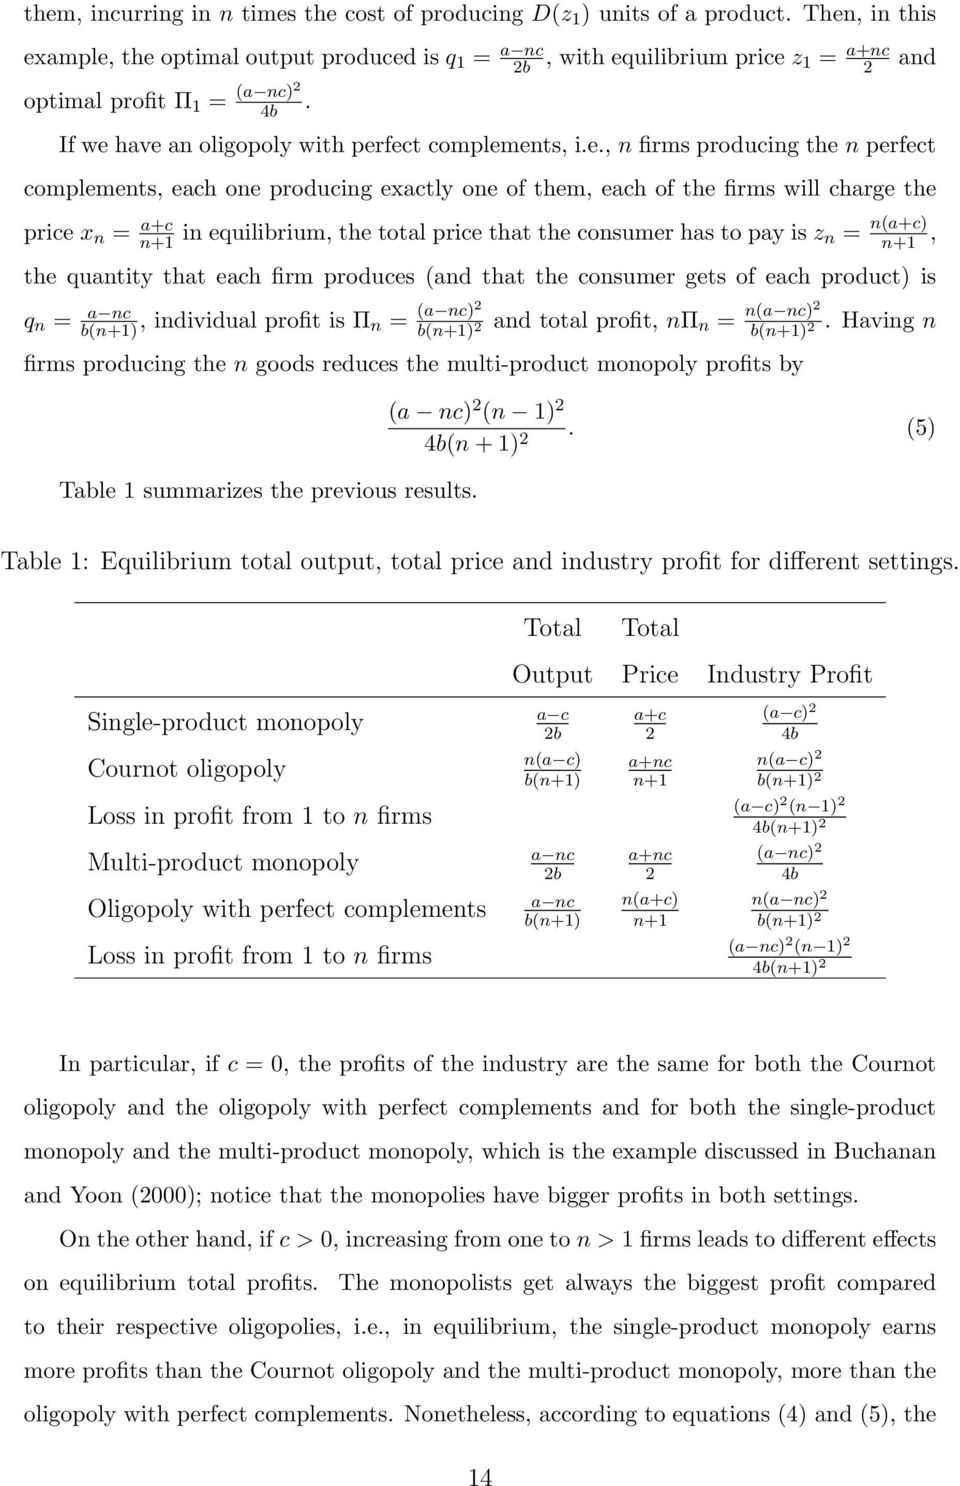 firms producing the n perfect complements, each one producing exactly one of them, each of the firms will charge the price x n = a+c n+1 in equilibrium, the total price that the consumer has to pay